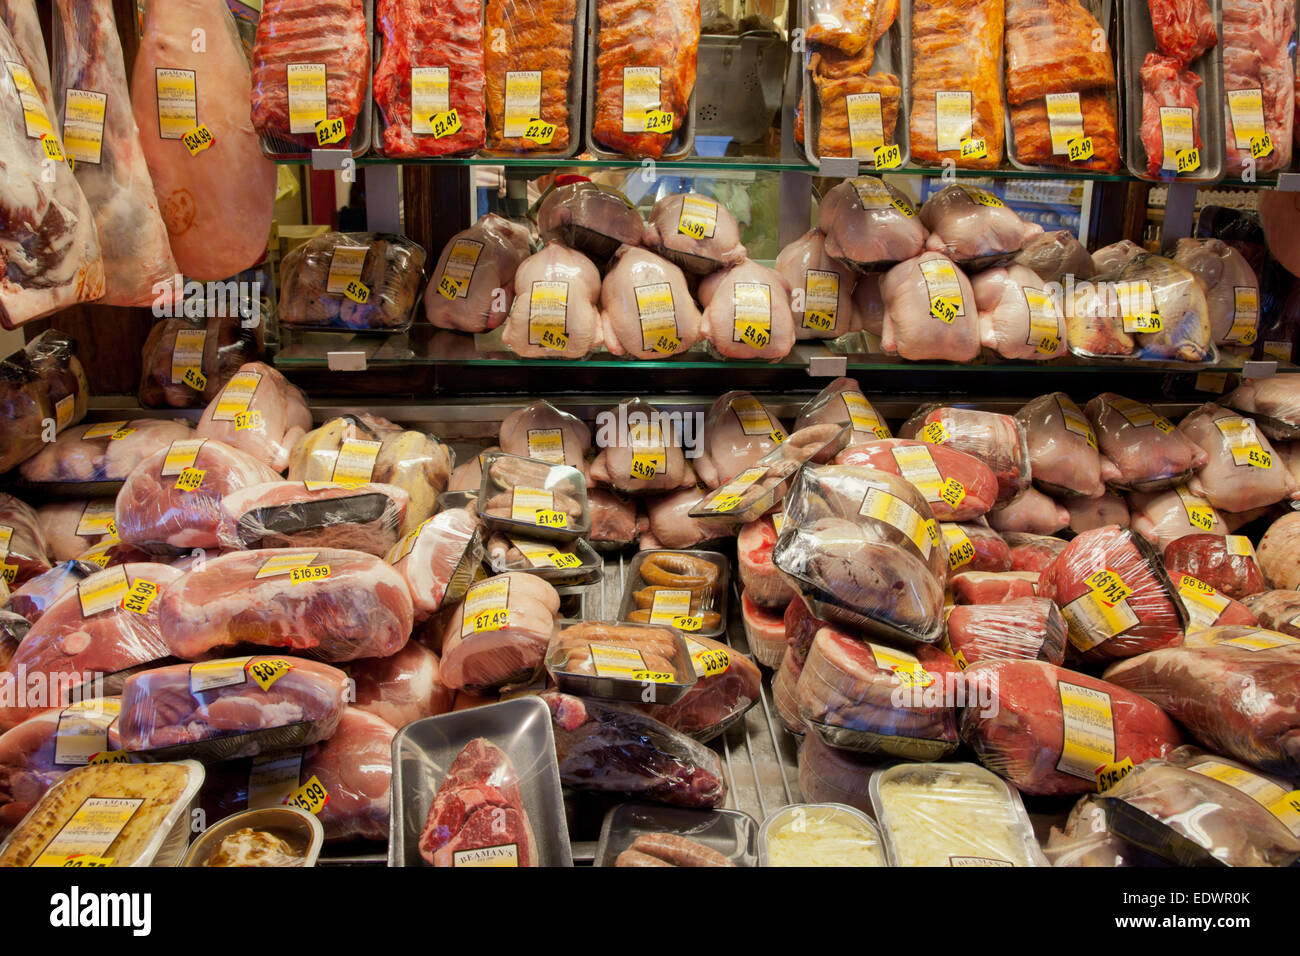 Butchers Display Stock Photos Butchers Display Stock